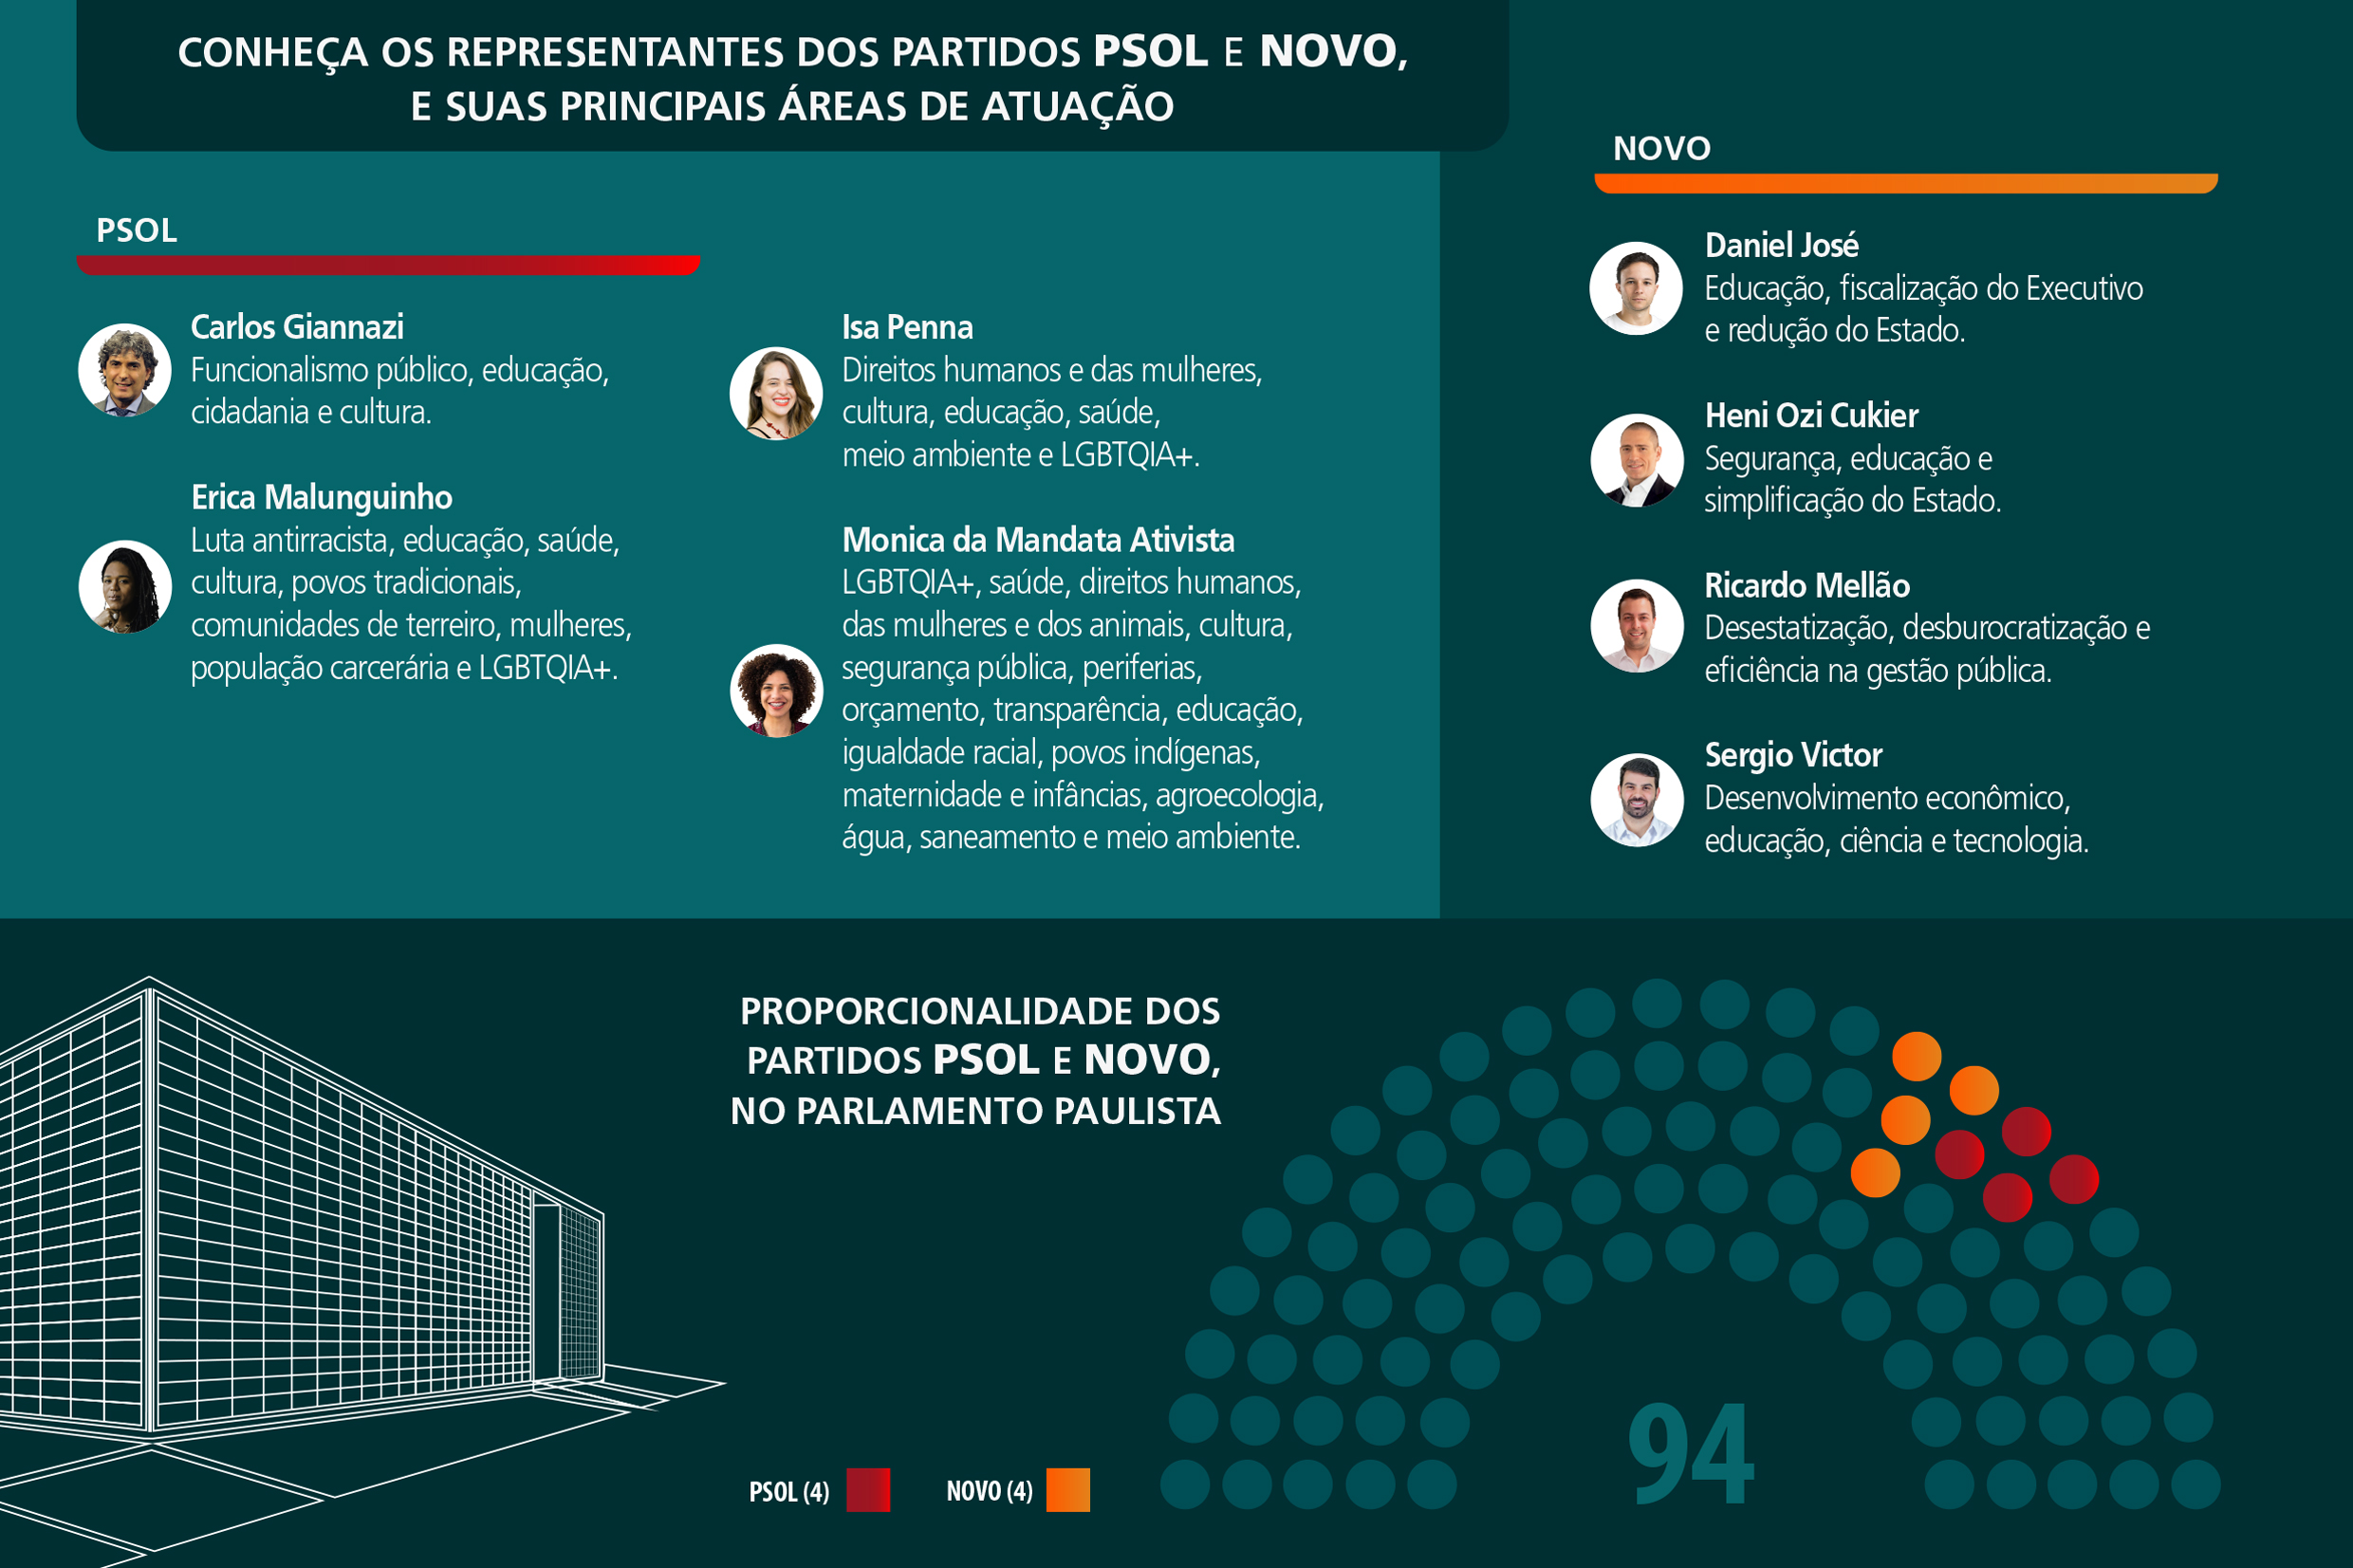 Infográfico<a style='float:right' href='https://www3.al.sp.gov.br/repositorio/noticia/N-07-2021/fg271039.jpg' target=_blank><img src='/_img/material-file-download-white.png' width='14px' alt='Clique para baixar a imagem'></a>